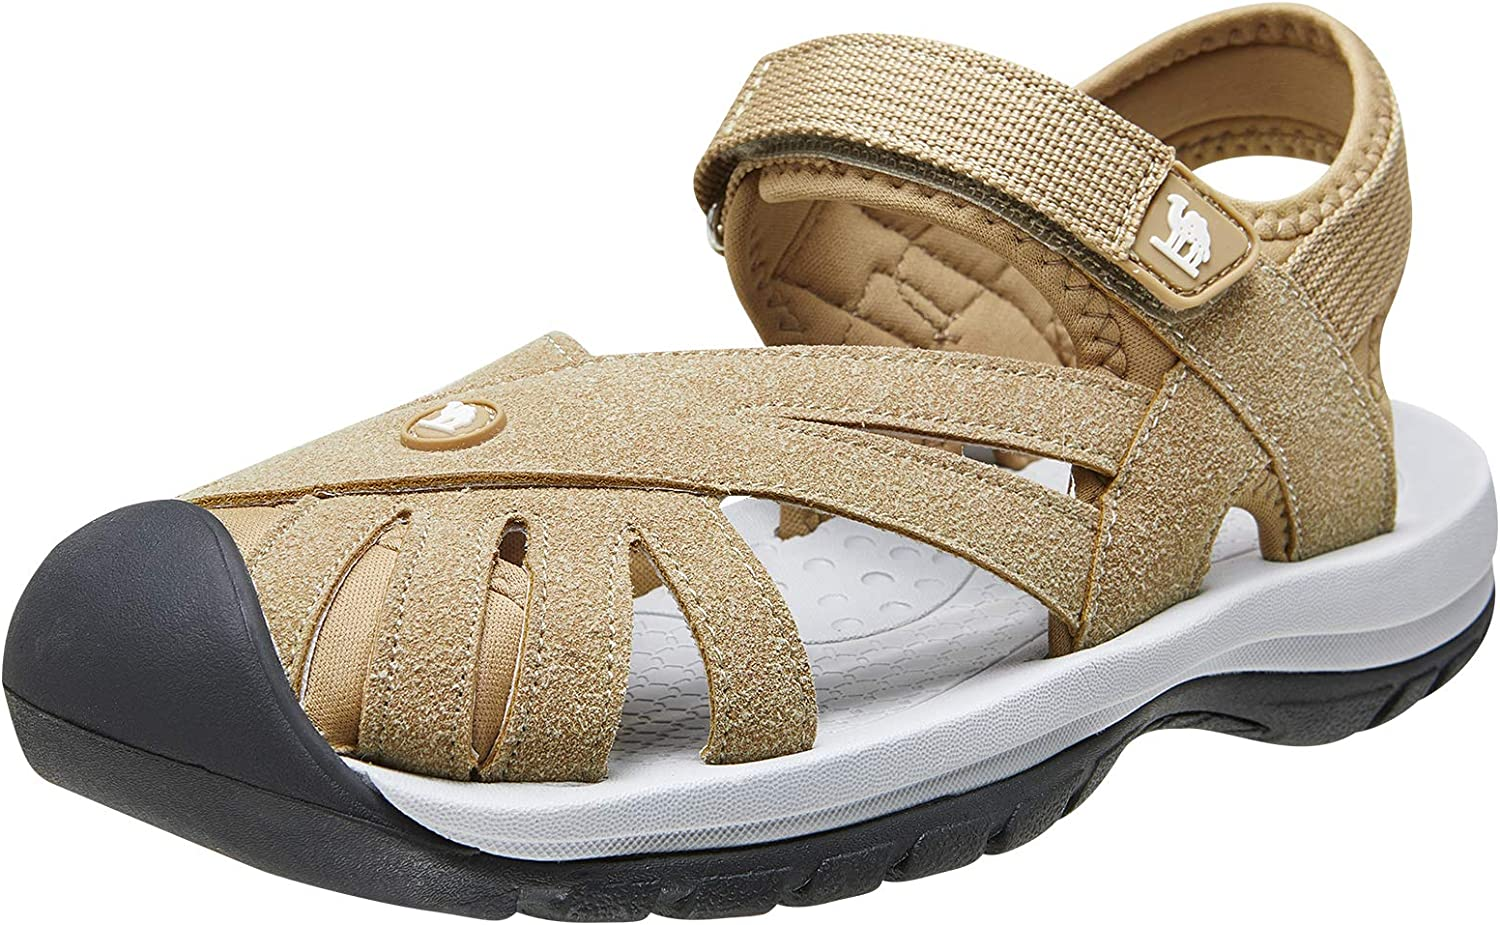 CAMEL CROWN Women's Hiking Sandals Waterproof Closed Toe Sport Sandals for Walking Outdoor Beach with Arch Support